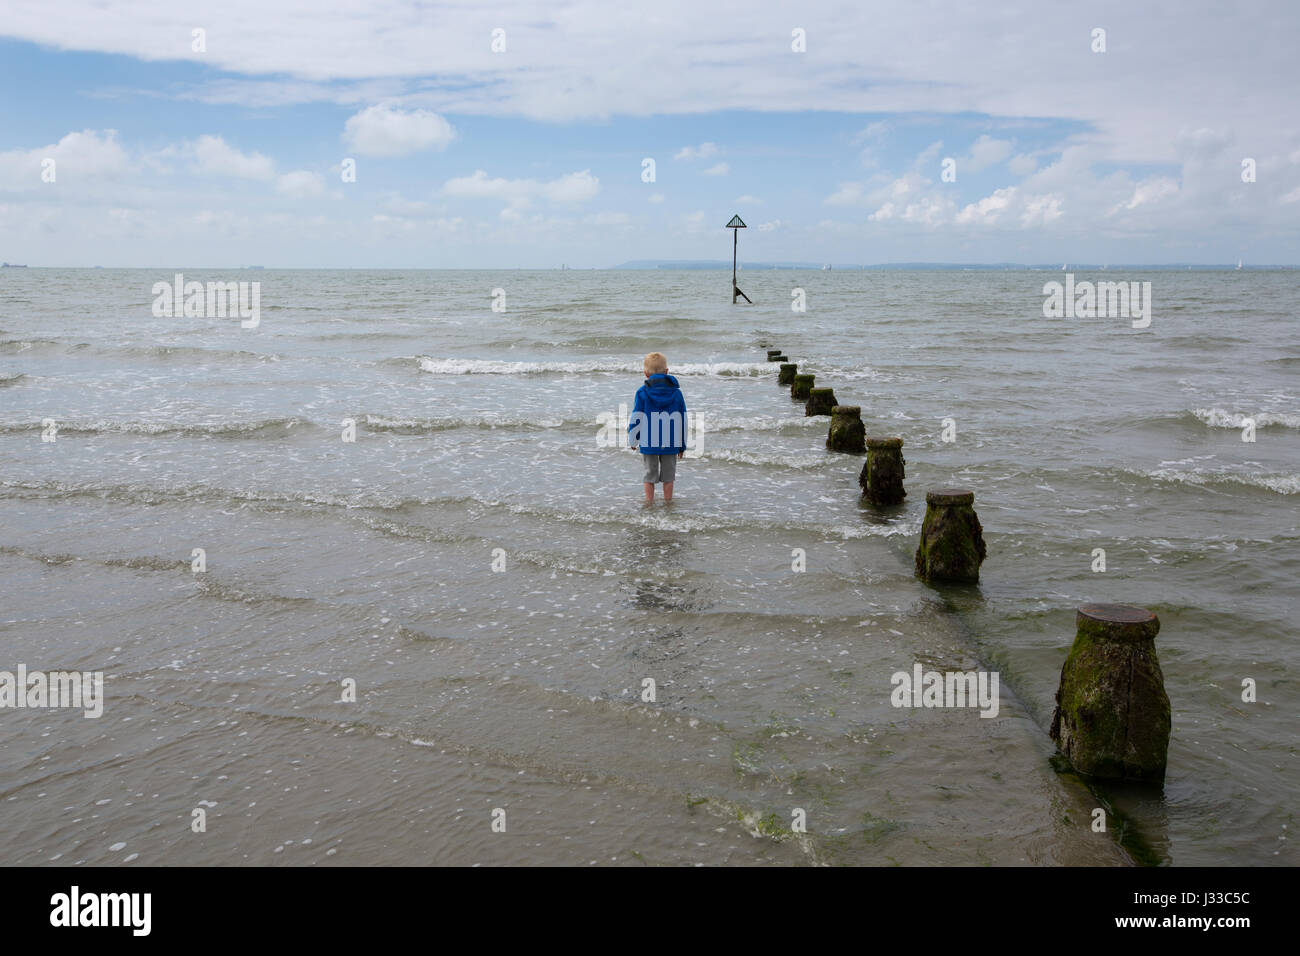 Unspoilt sandy beach of West Wittering on the Manhood Peninsula in the Chichester district of West Sussex, England - Stock Image